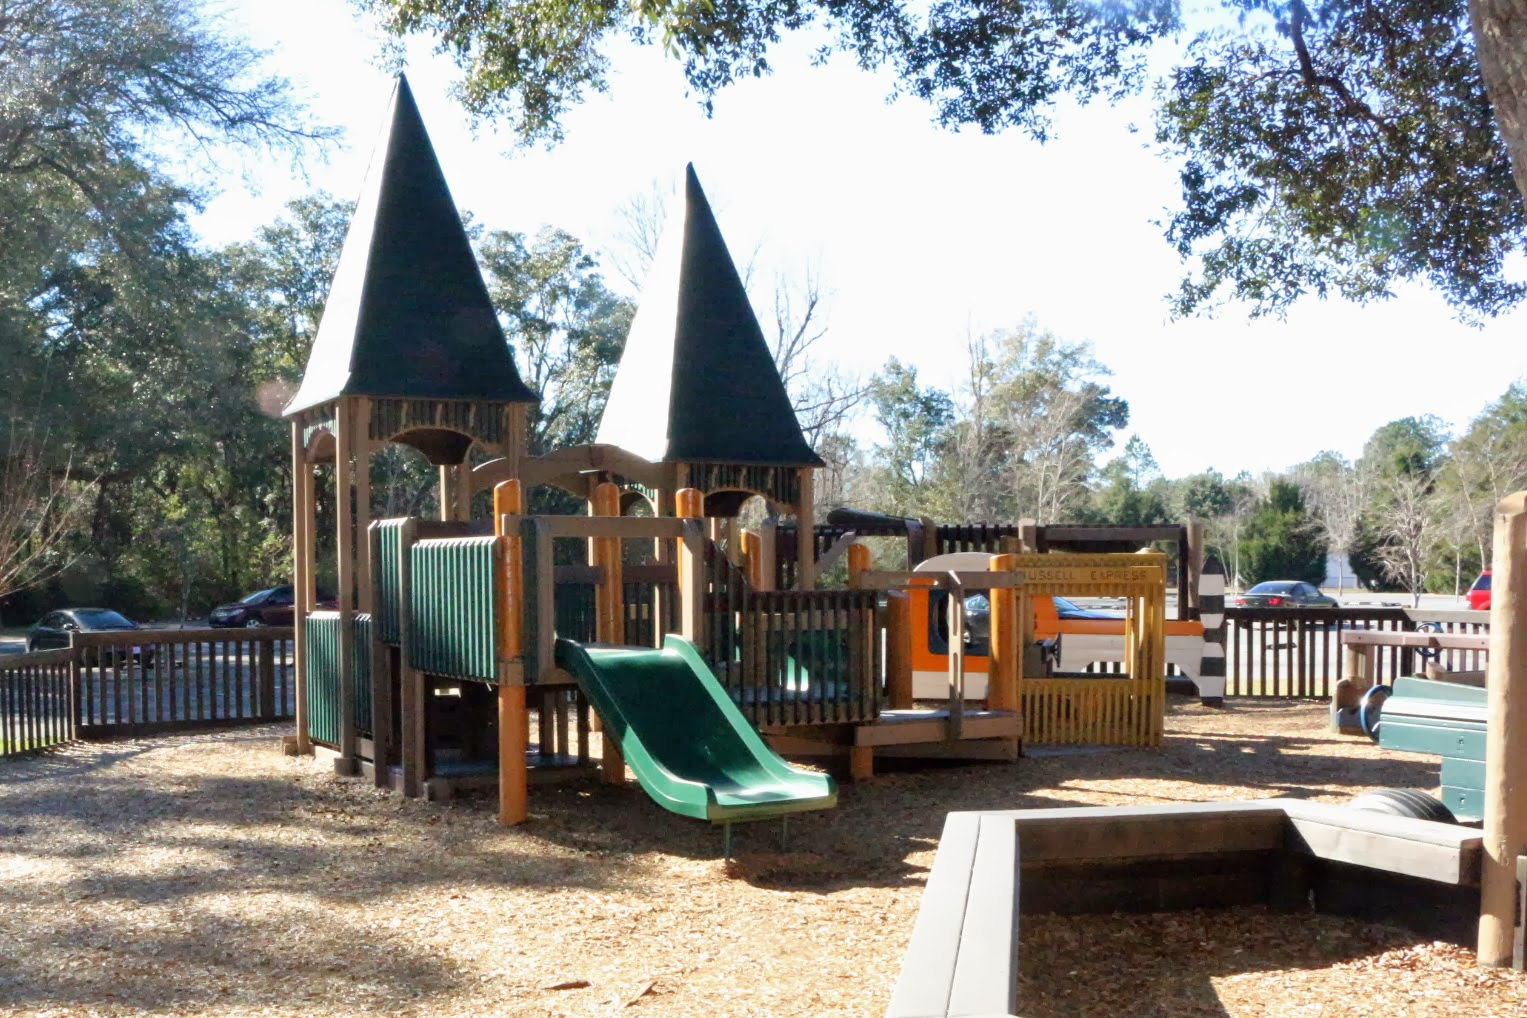 Tot Park for ages 2-5 at Benny Russell Park, Pace, FL 32571